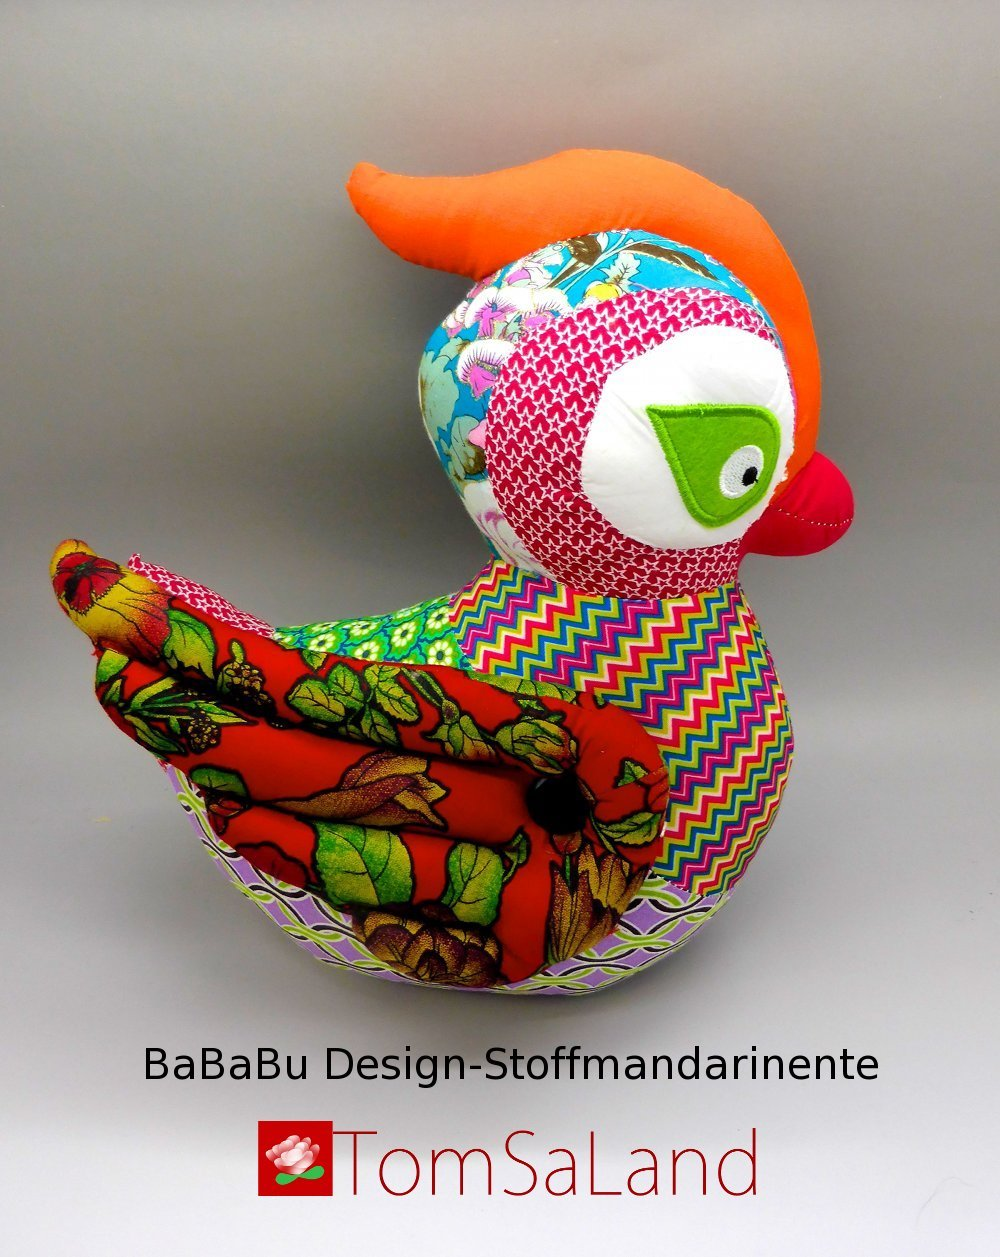 BaBaBu_Design-Stoffmandarinente_Coverbilder